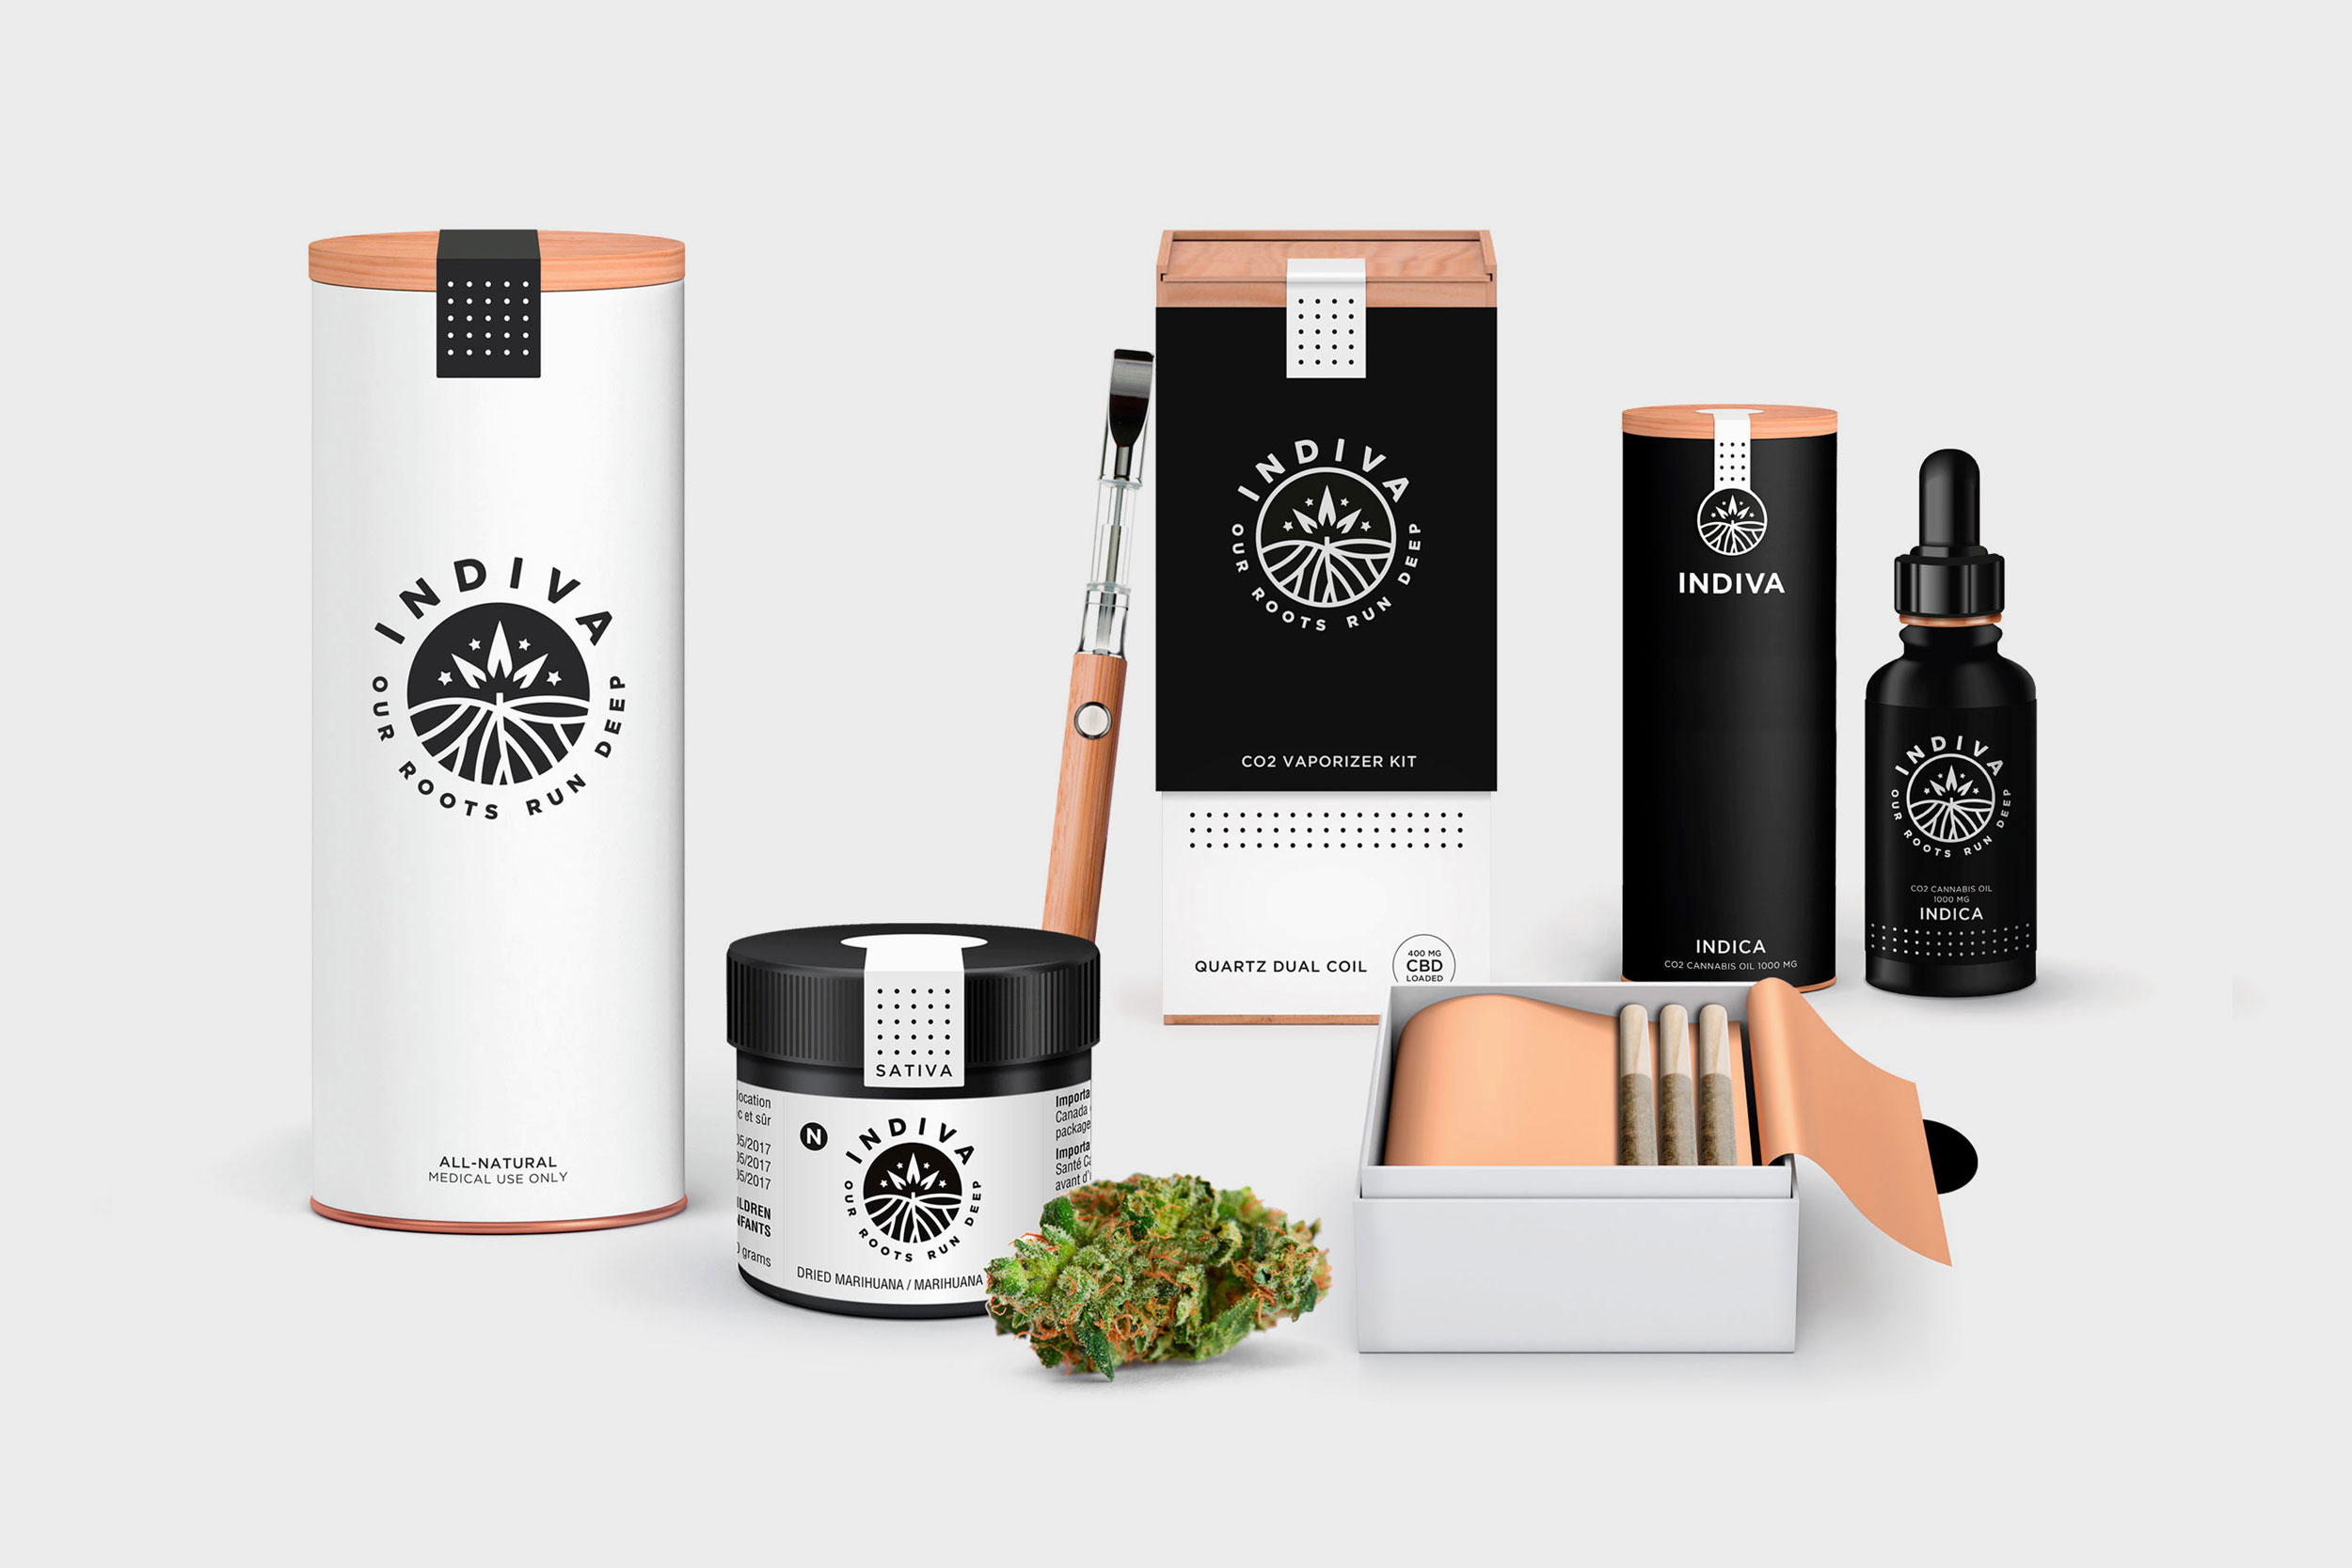 Best Cannabis Brand Nomination by Lift & Co. – Indiva